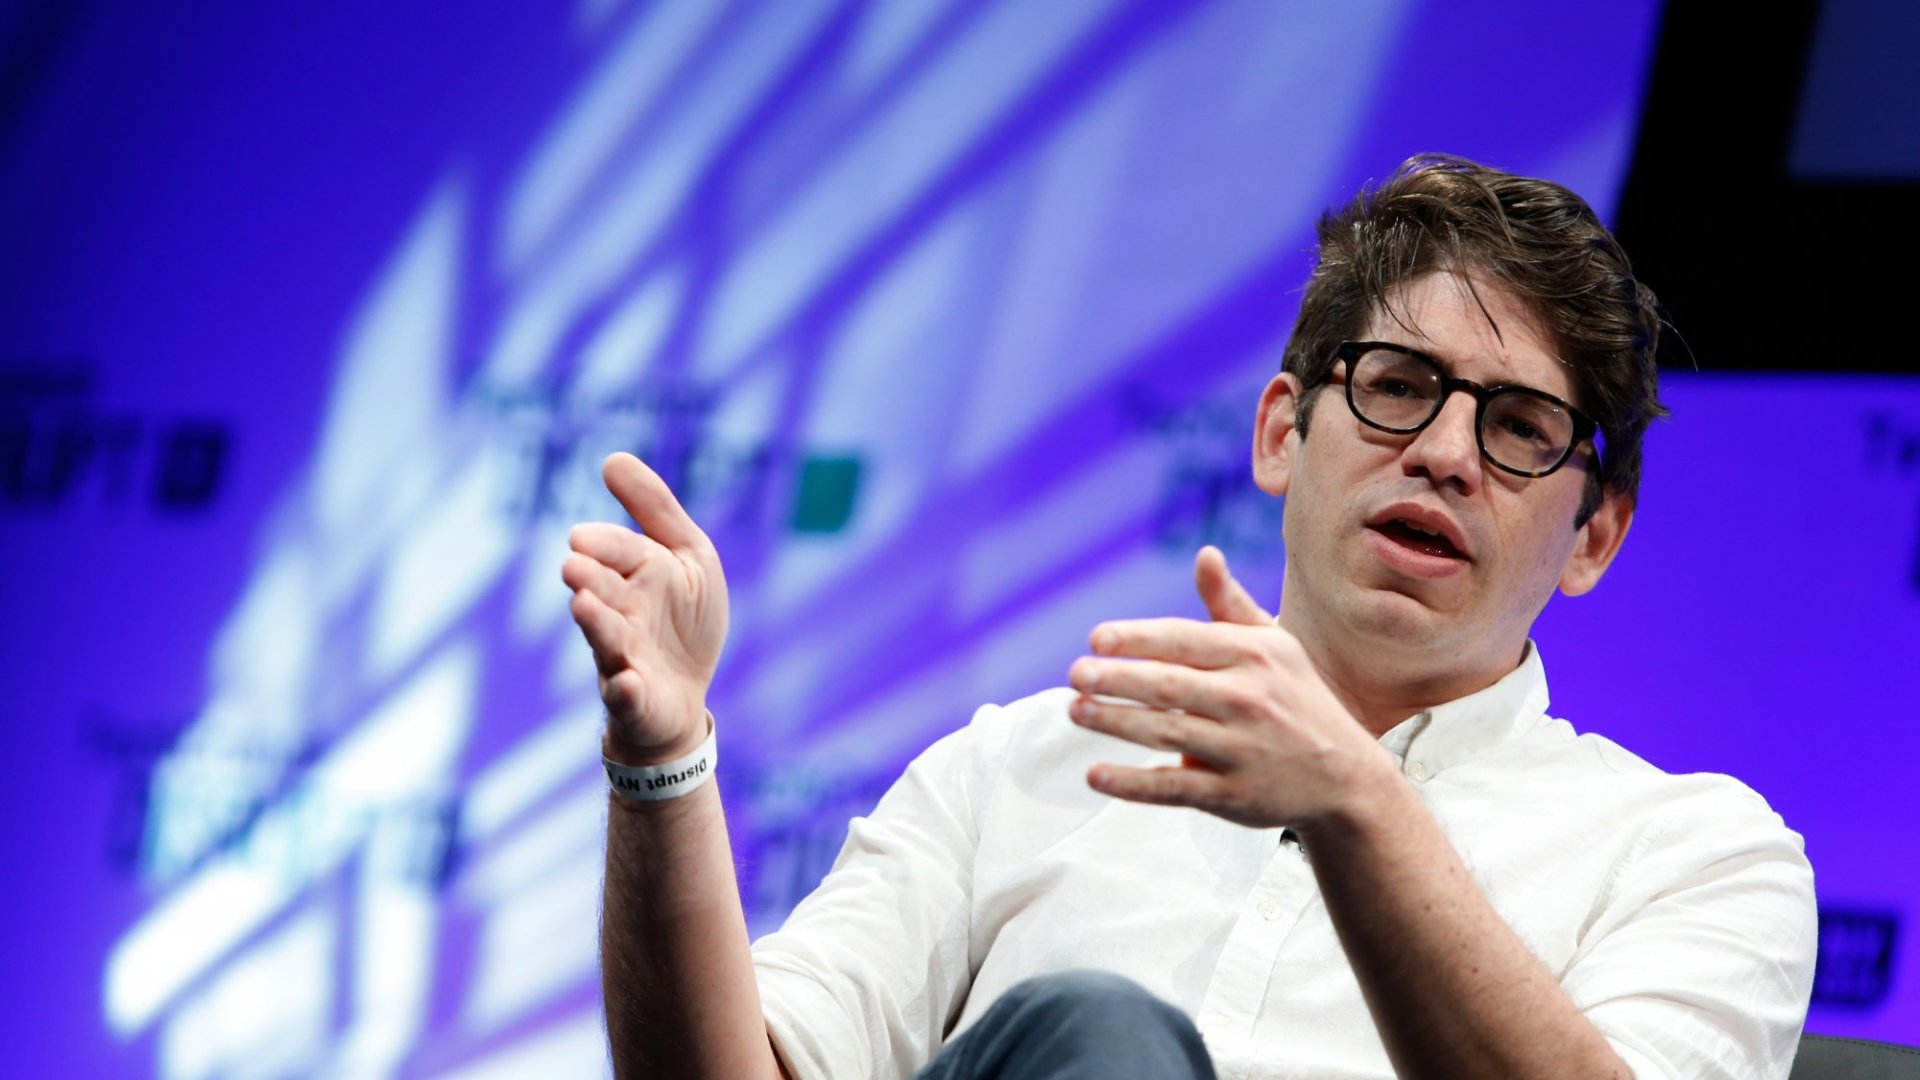 How Kickstarter's Yancey Strickler Made the Tough Decision to Quit His Day Job